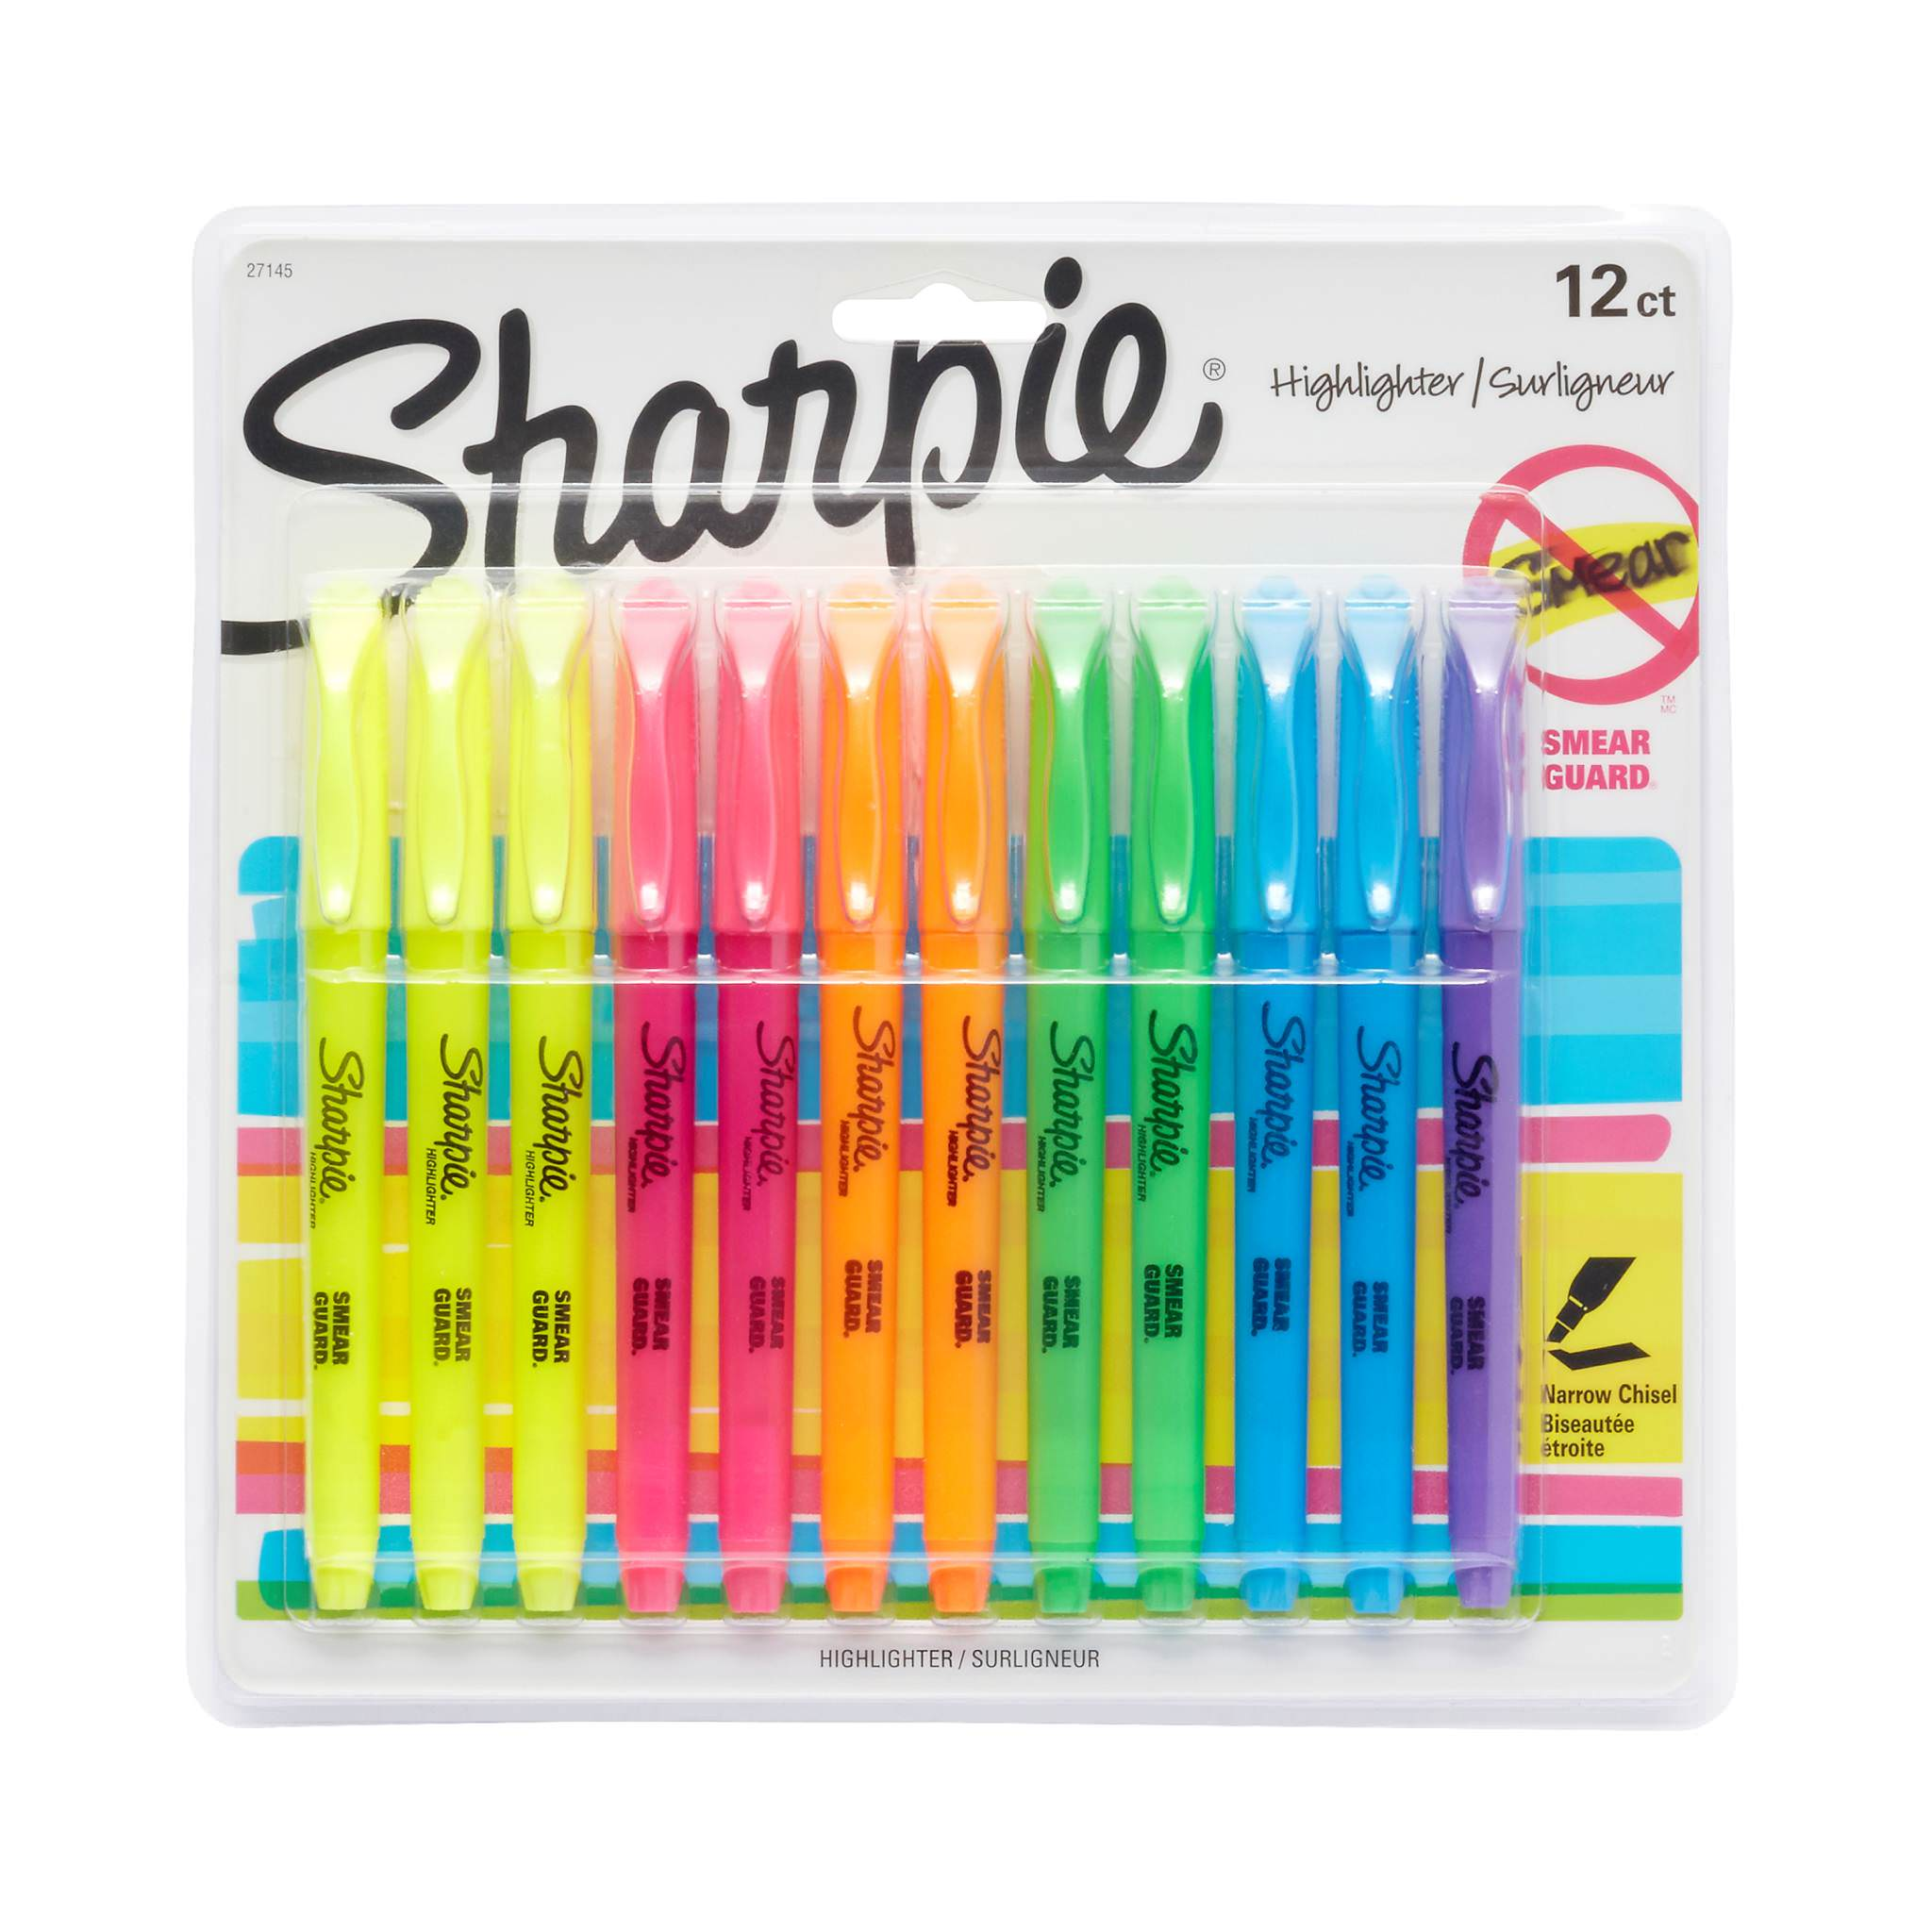 back to school shopping list sharpie highlighter